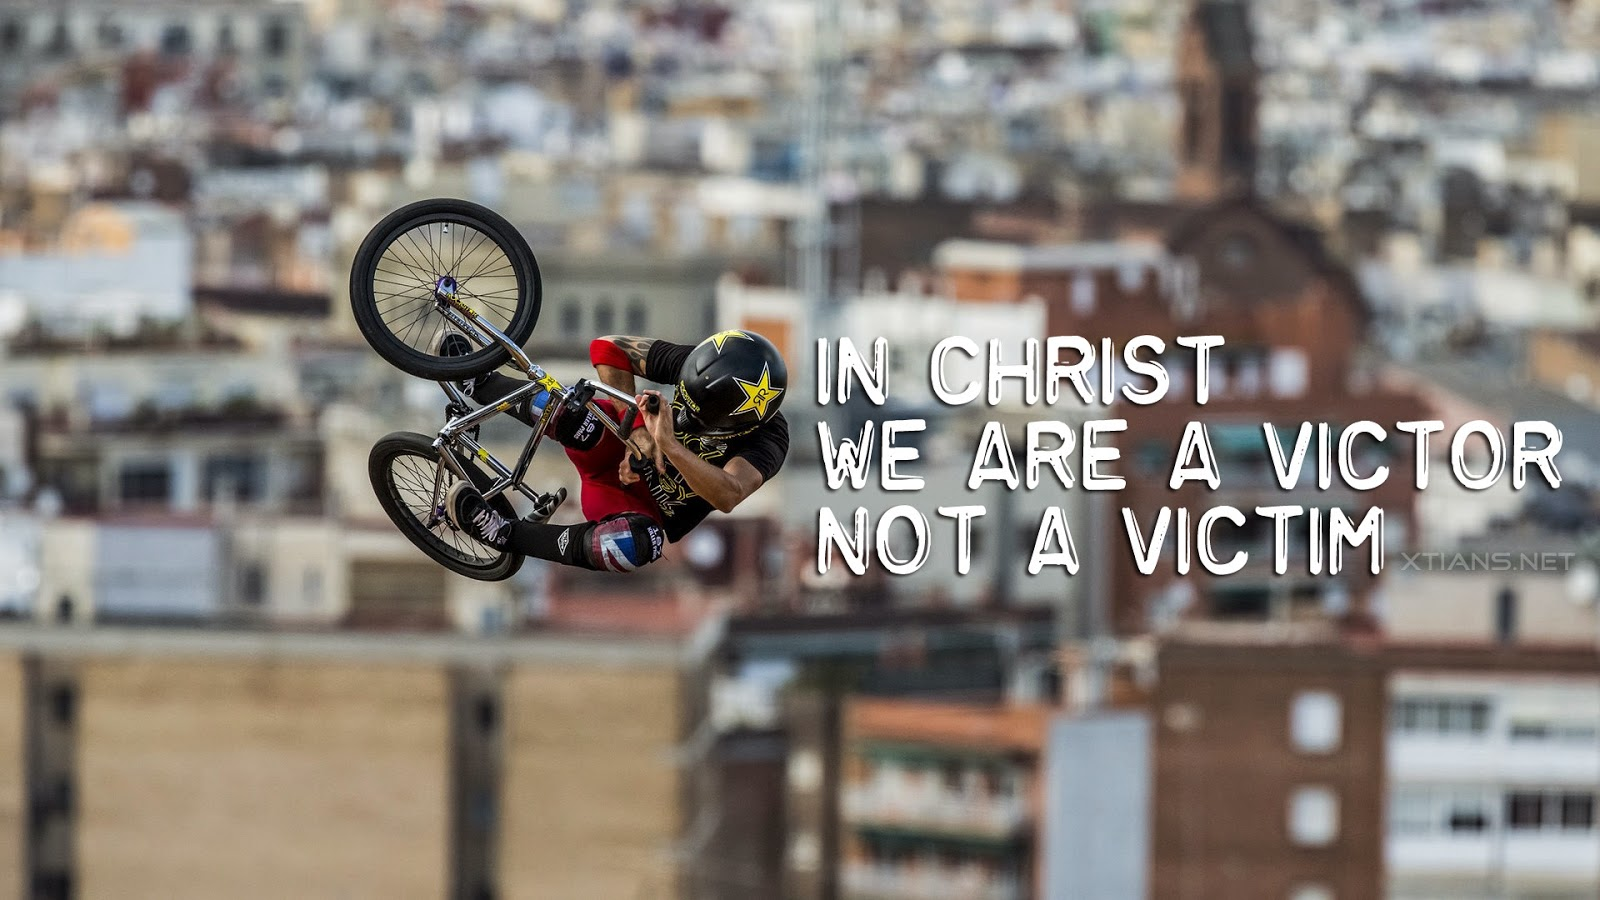 Christian Wallpaper - We are victor not a victim